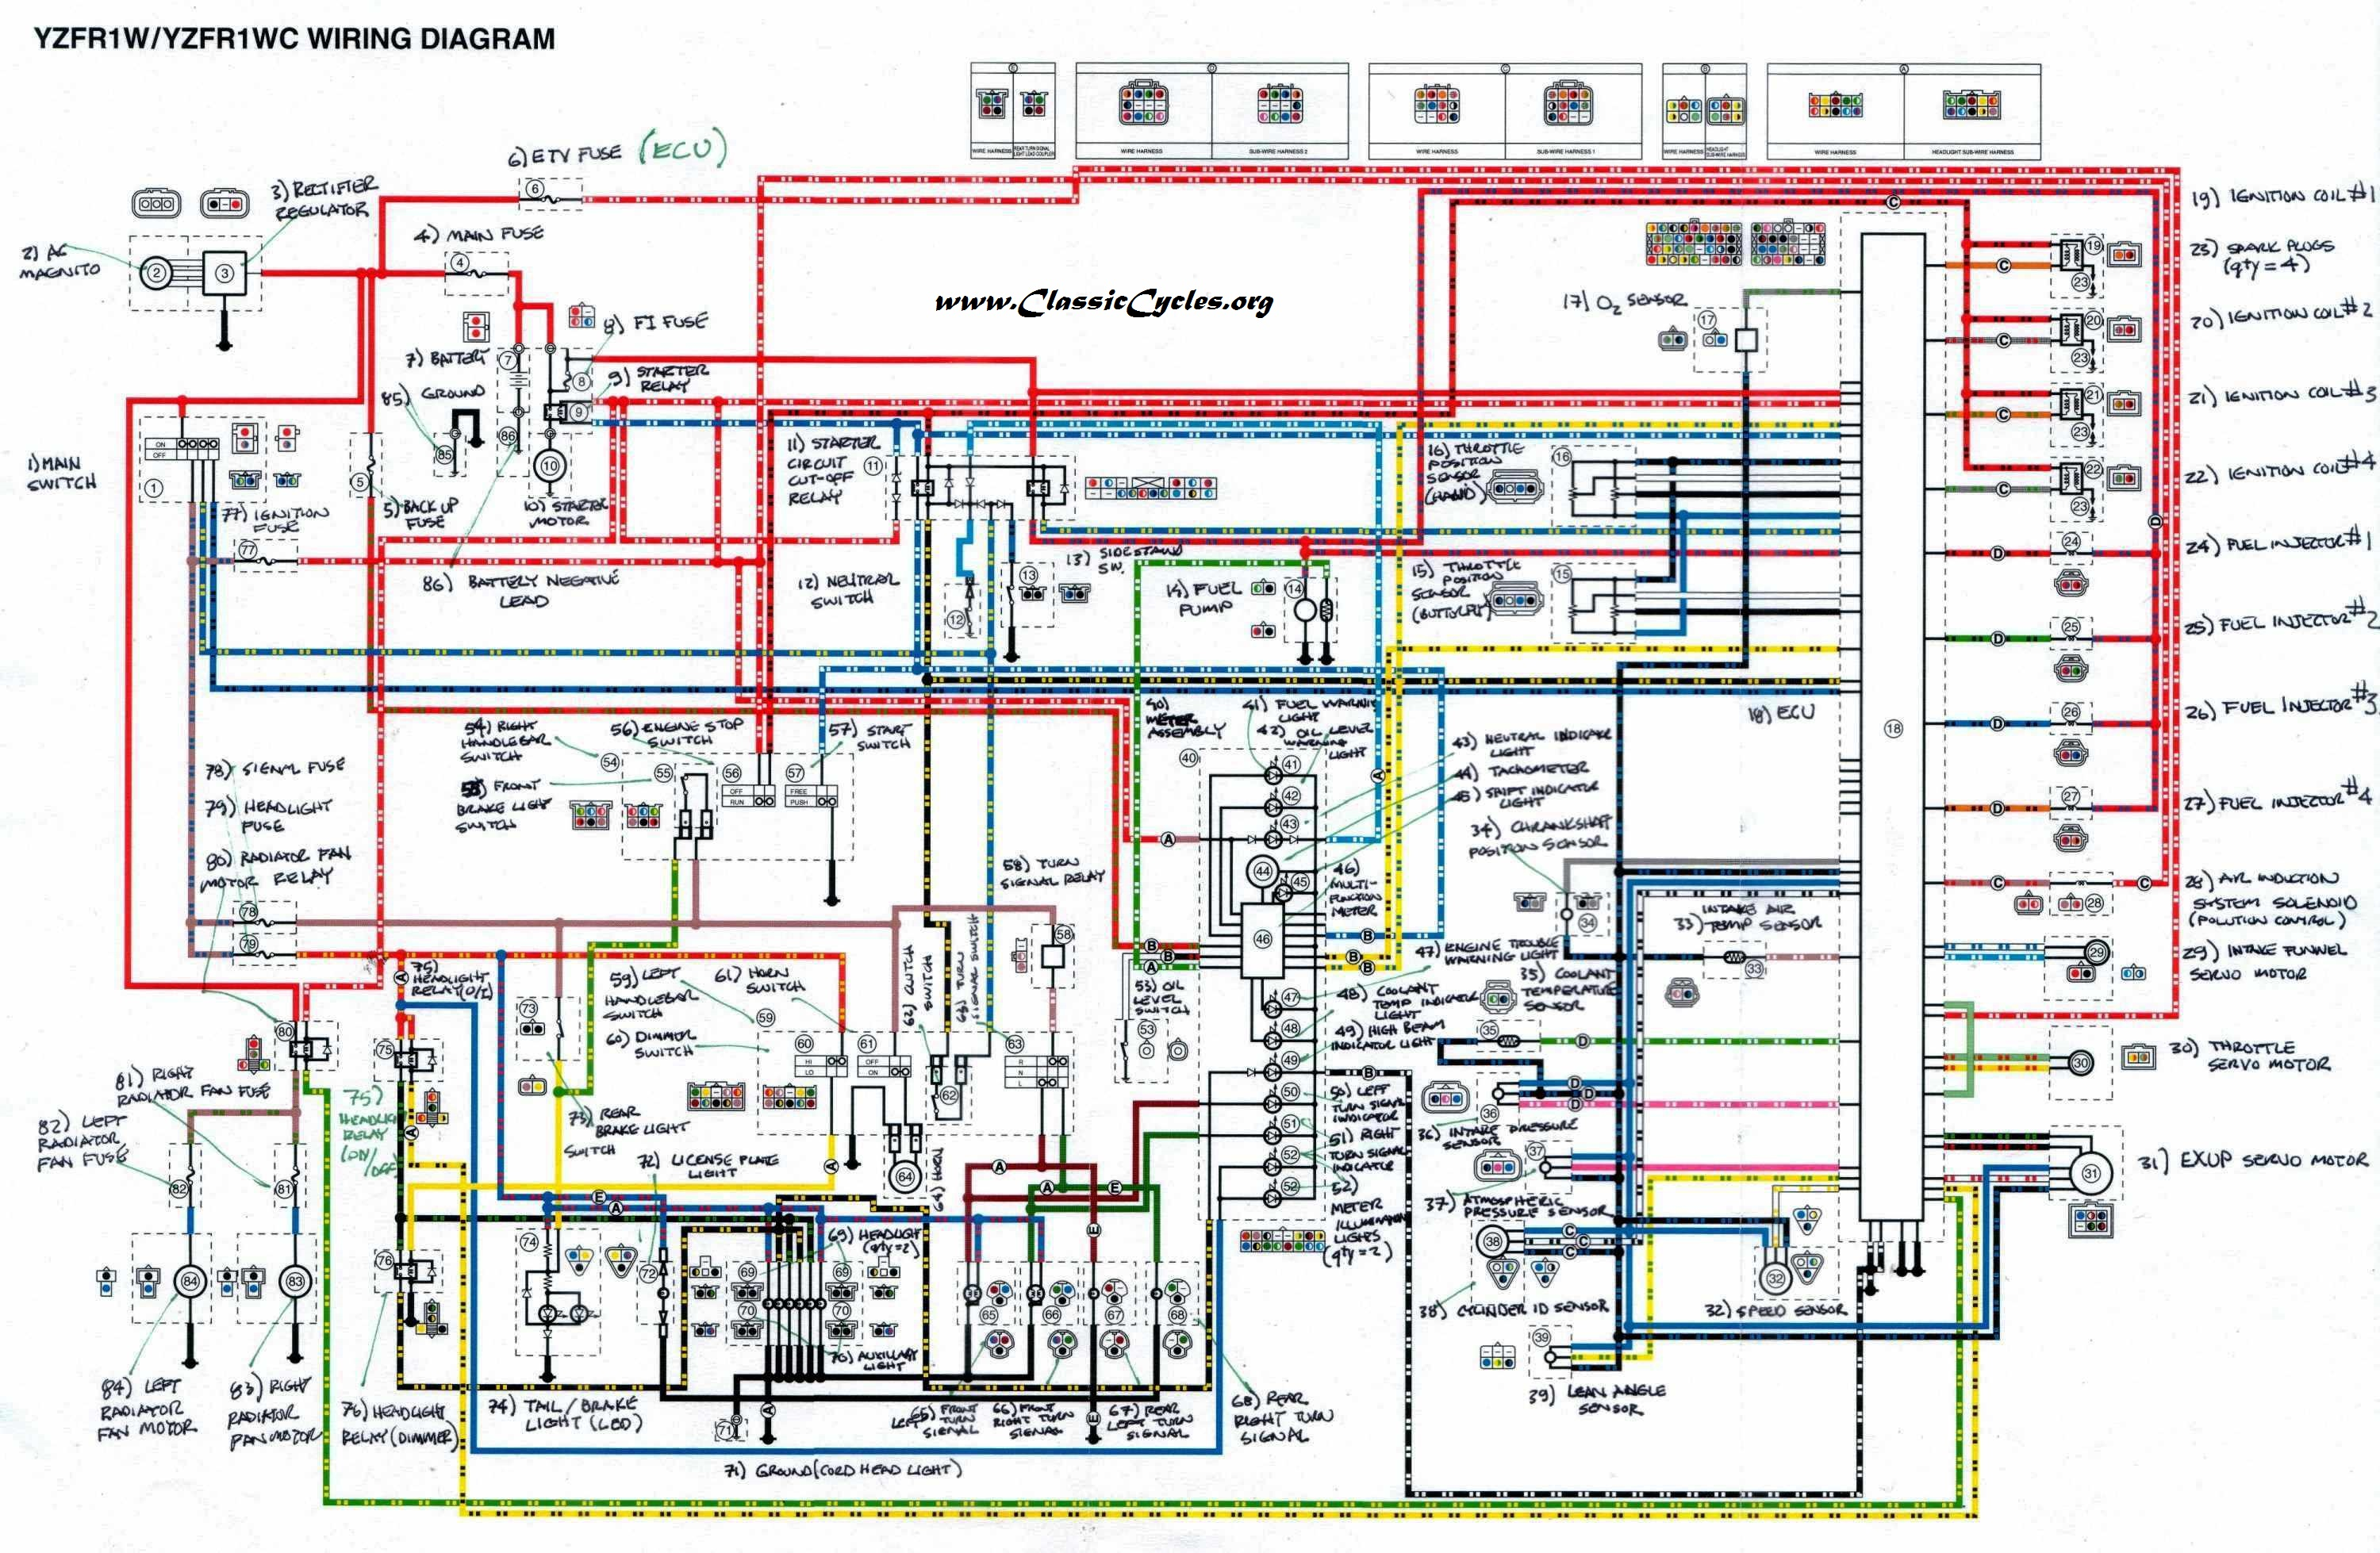 yamaha gx 80 1976 moto yamaha outboard motor wiring diagrams the wiring diagram yamaha moto 4 225 wiring diagram at n-0.co